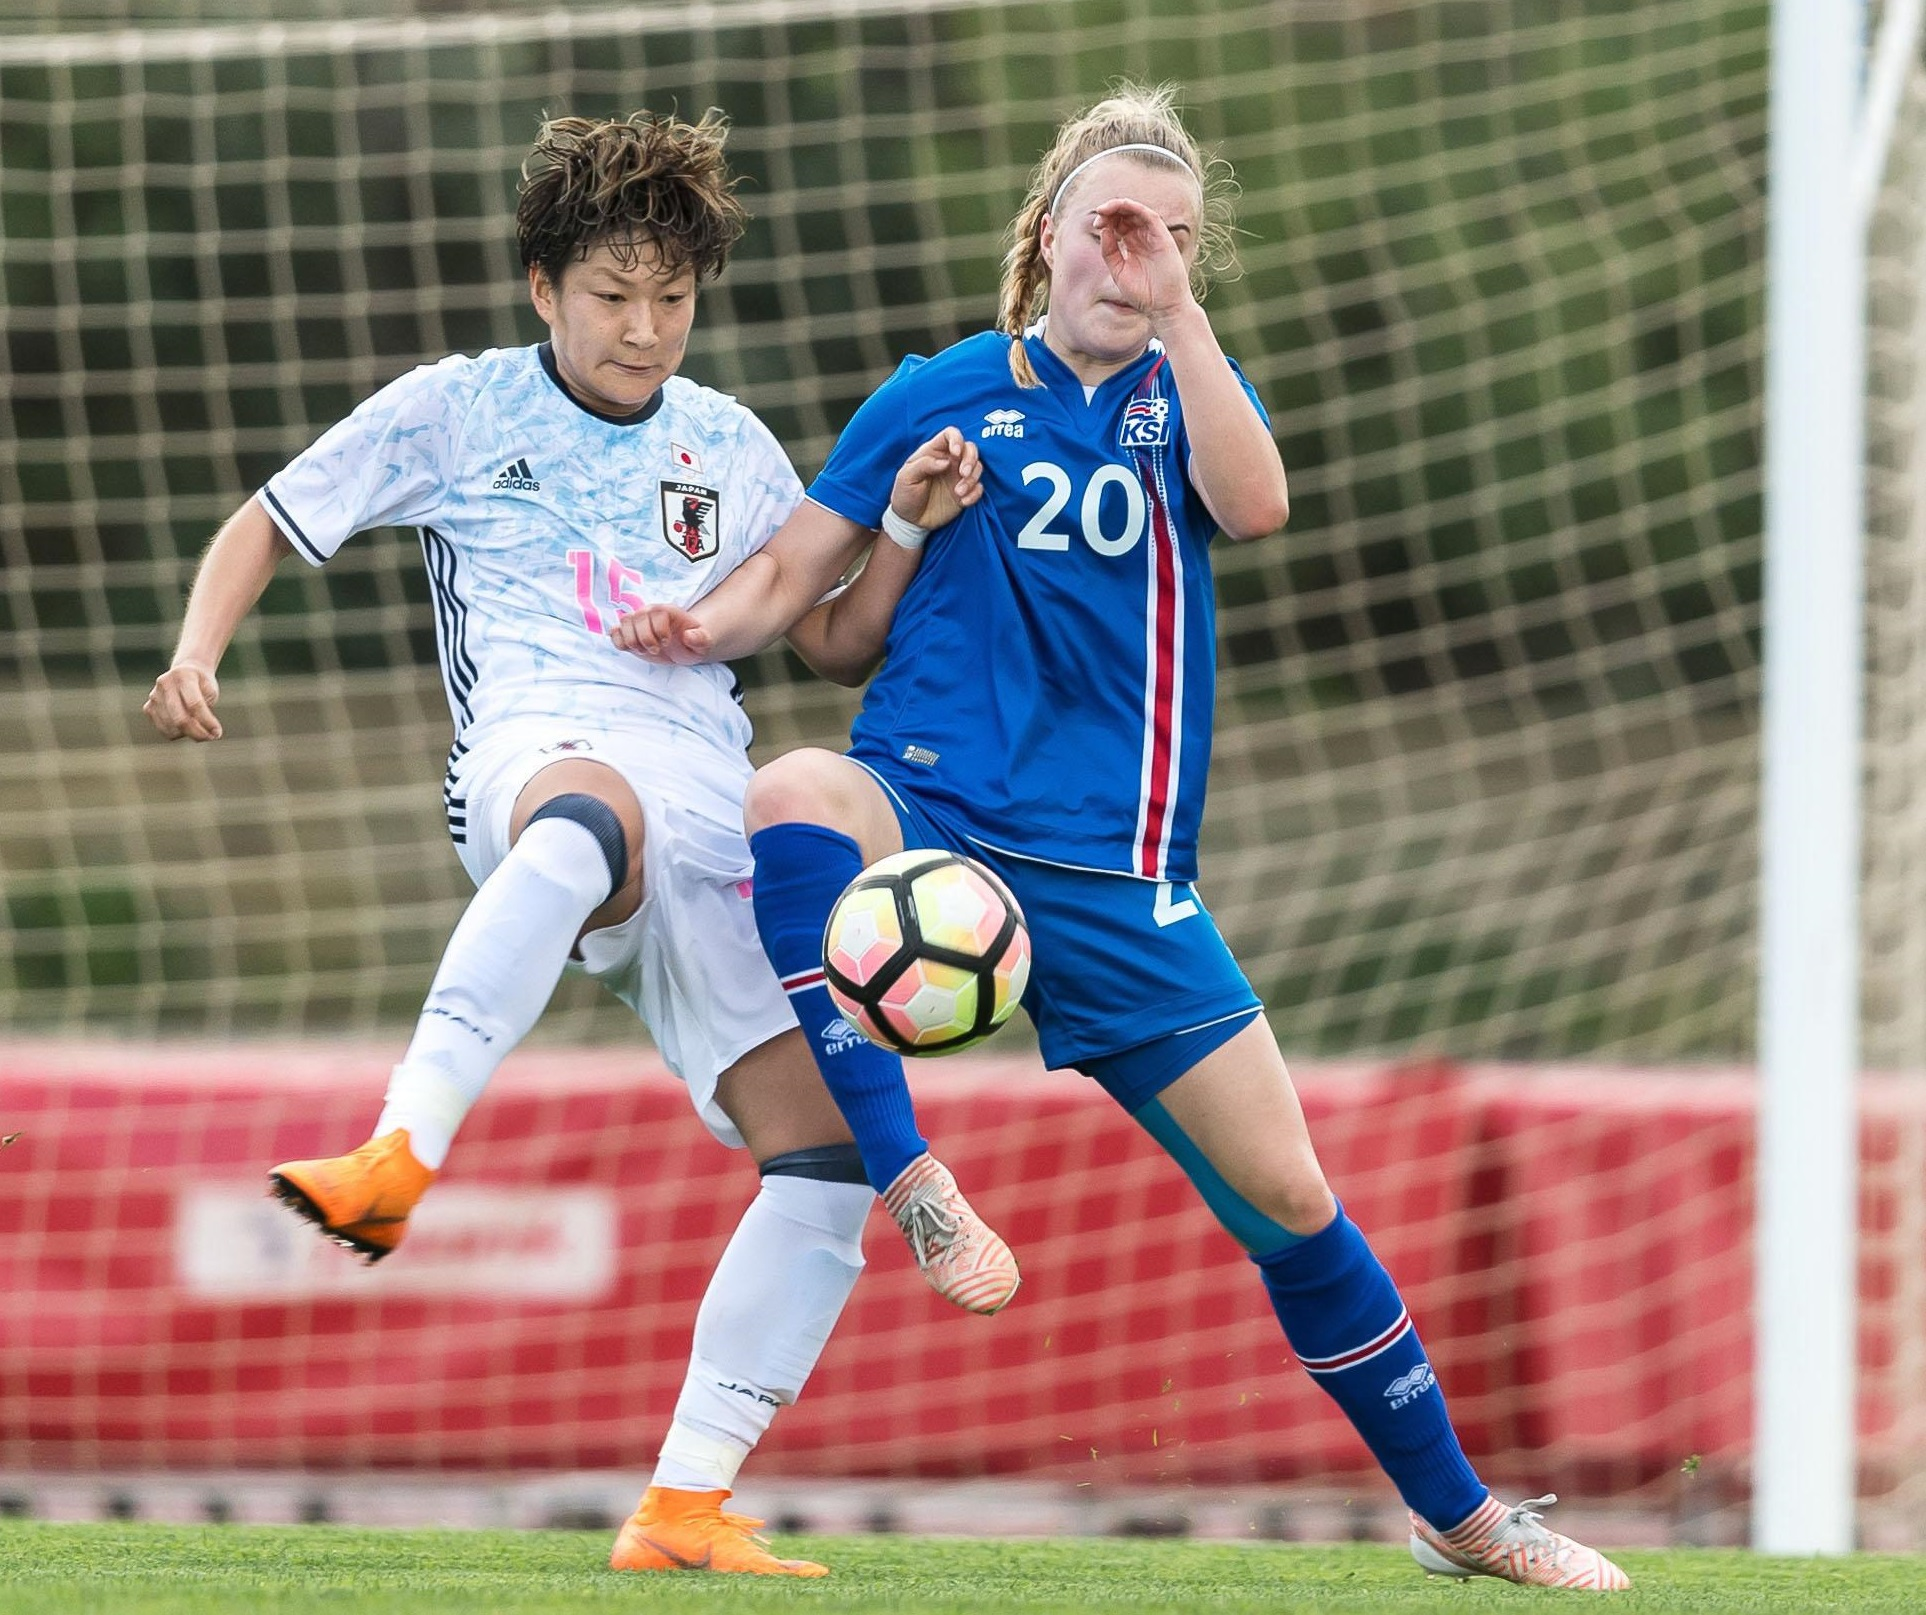 Japan's Yuika Sugasawa (left) and Iceland's Guony Árnadottir vie for the ball in an Algarve Cup match on Friday in Parchal, Portugal.   GETTY / VIA KYODO